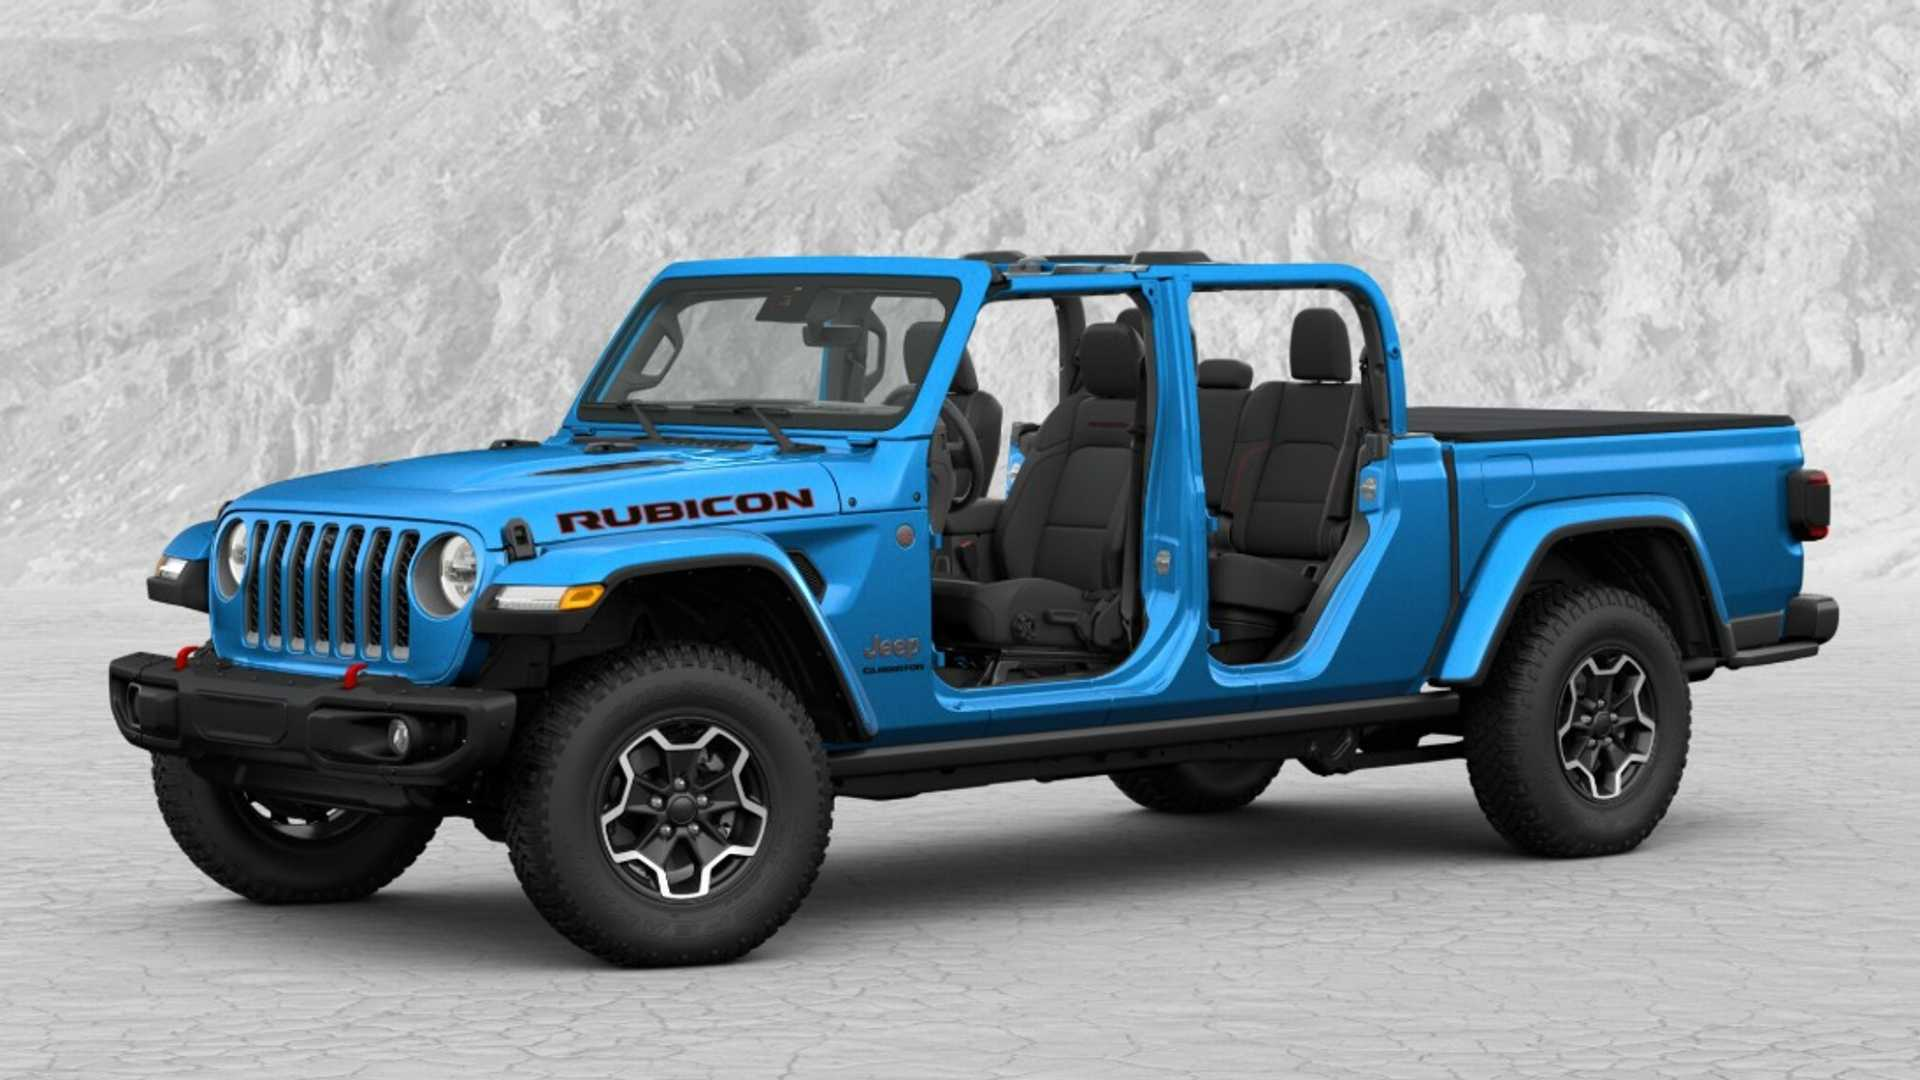 91 Best Review Jeep Truck 2020 Price Concept for Jeep Truck 2020 Price